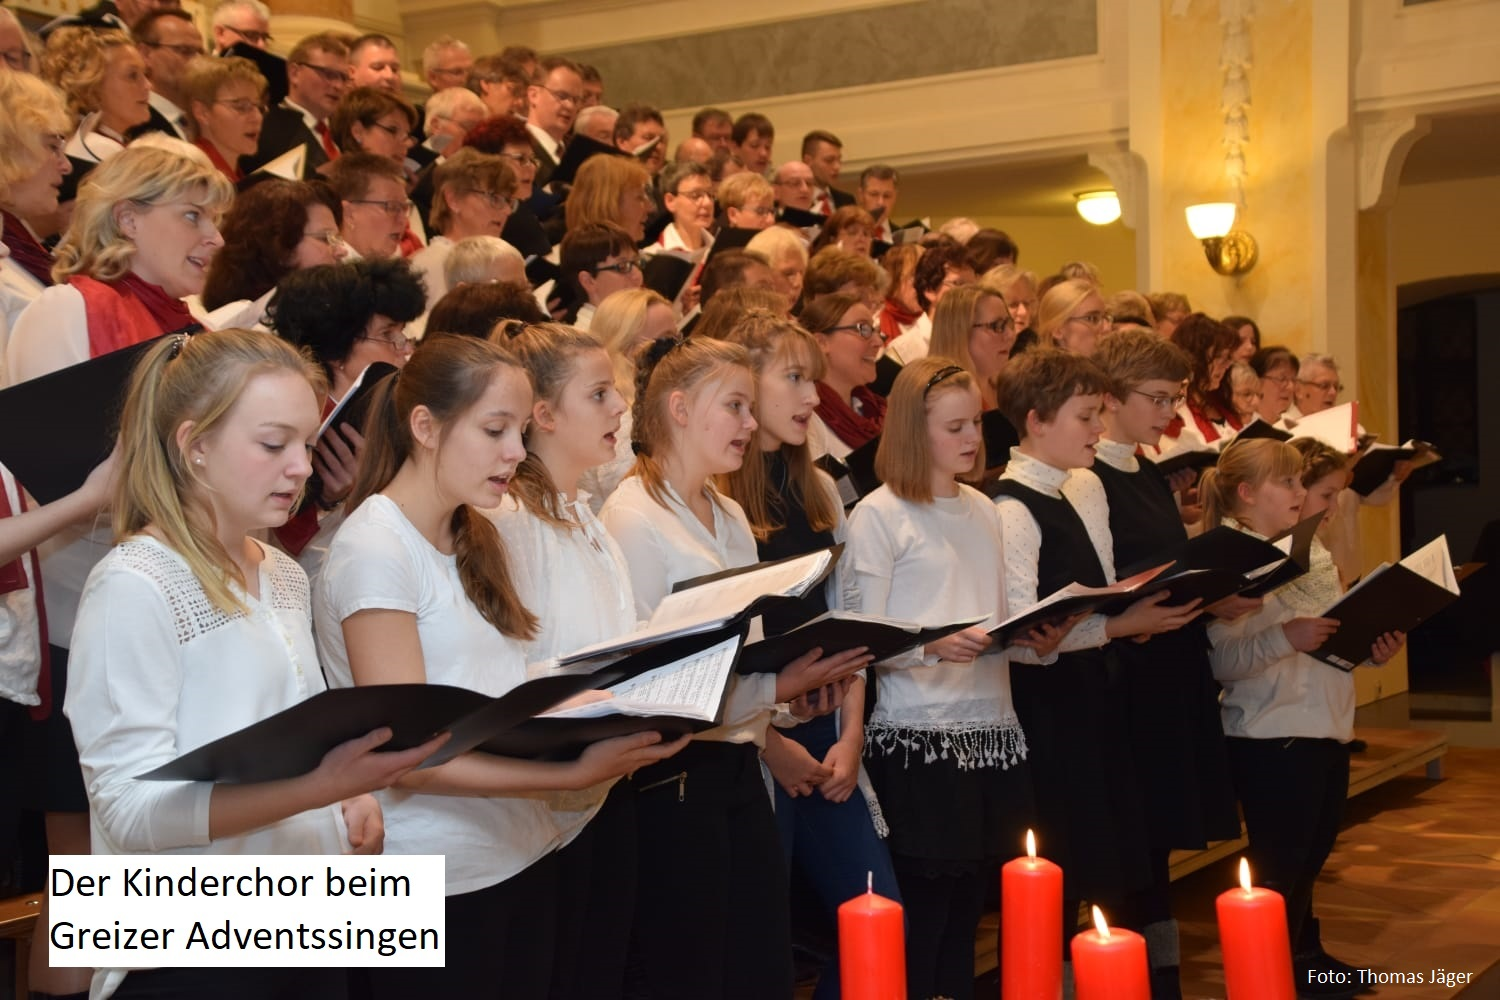 Adventssingen_Kinderchor2